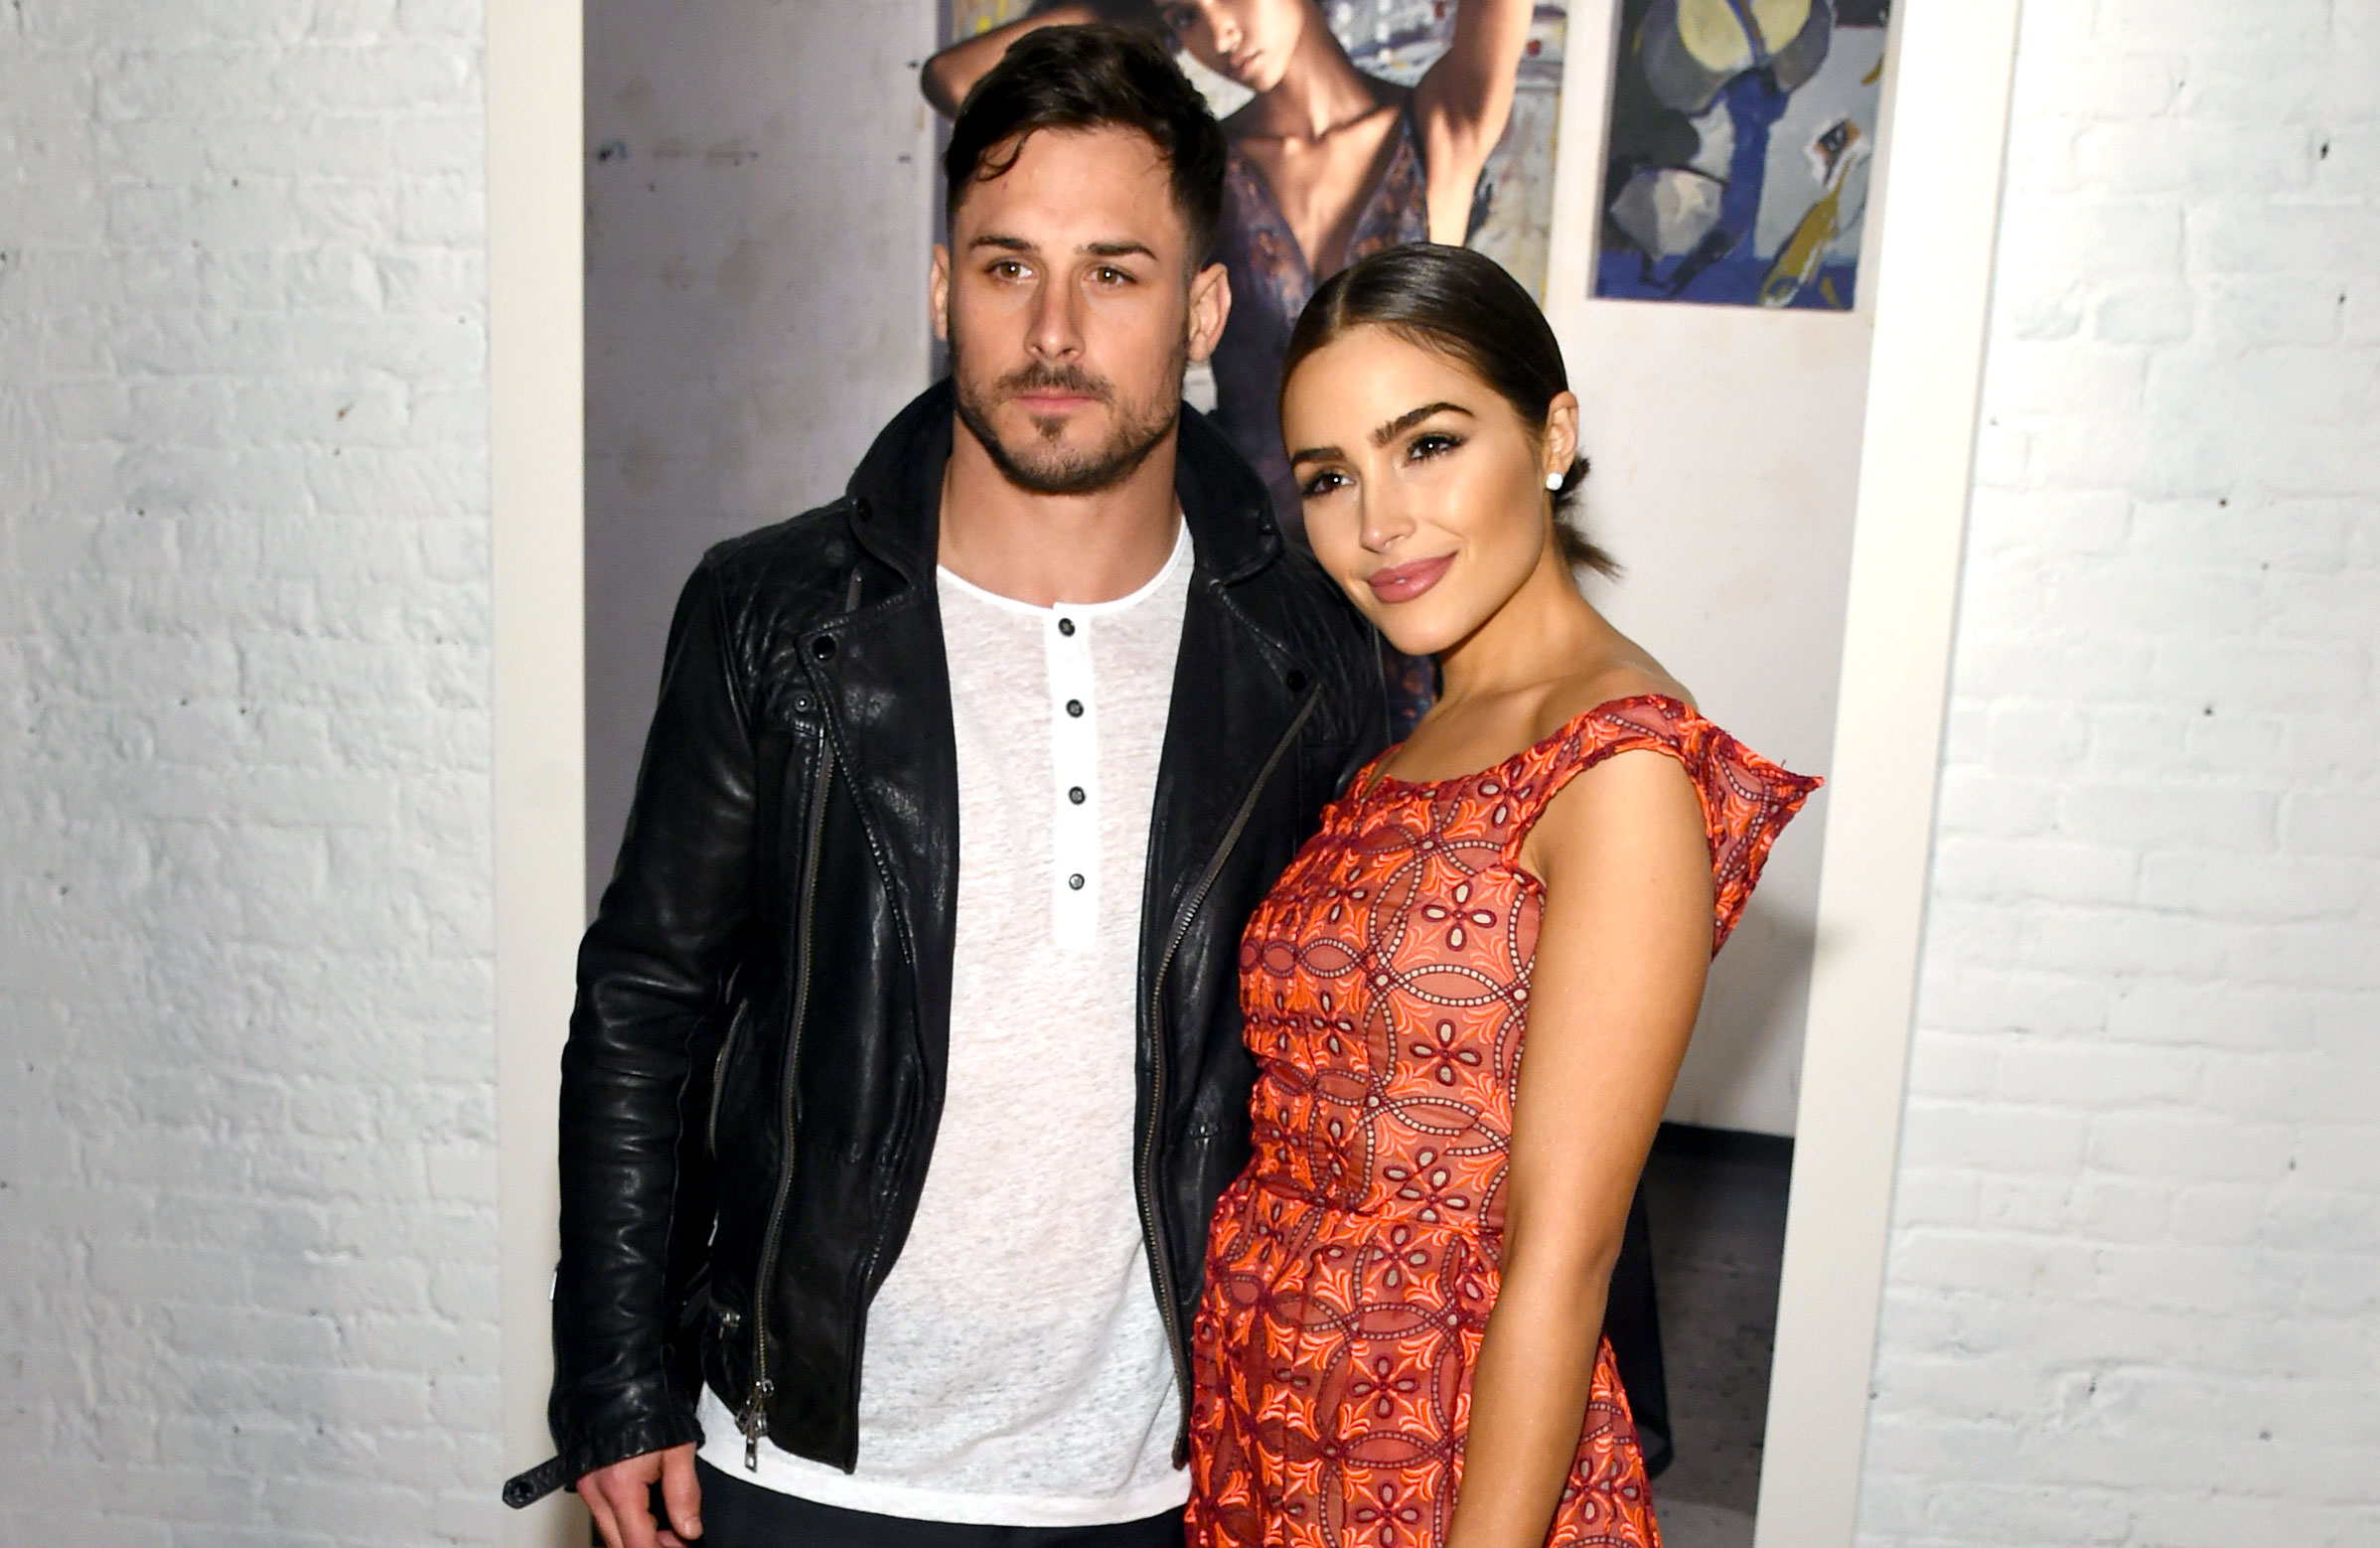 Danny Amendola Takes Blame After Slamming Ex Olivia Culpo - Danny Amendola and Olivia Culpo pose backstage before the Zac Posen collection during, New York Fashion Week: The Shows on February 14, 2017 in New York City.